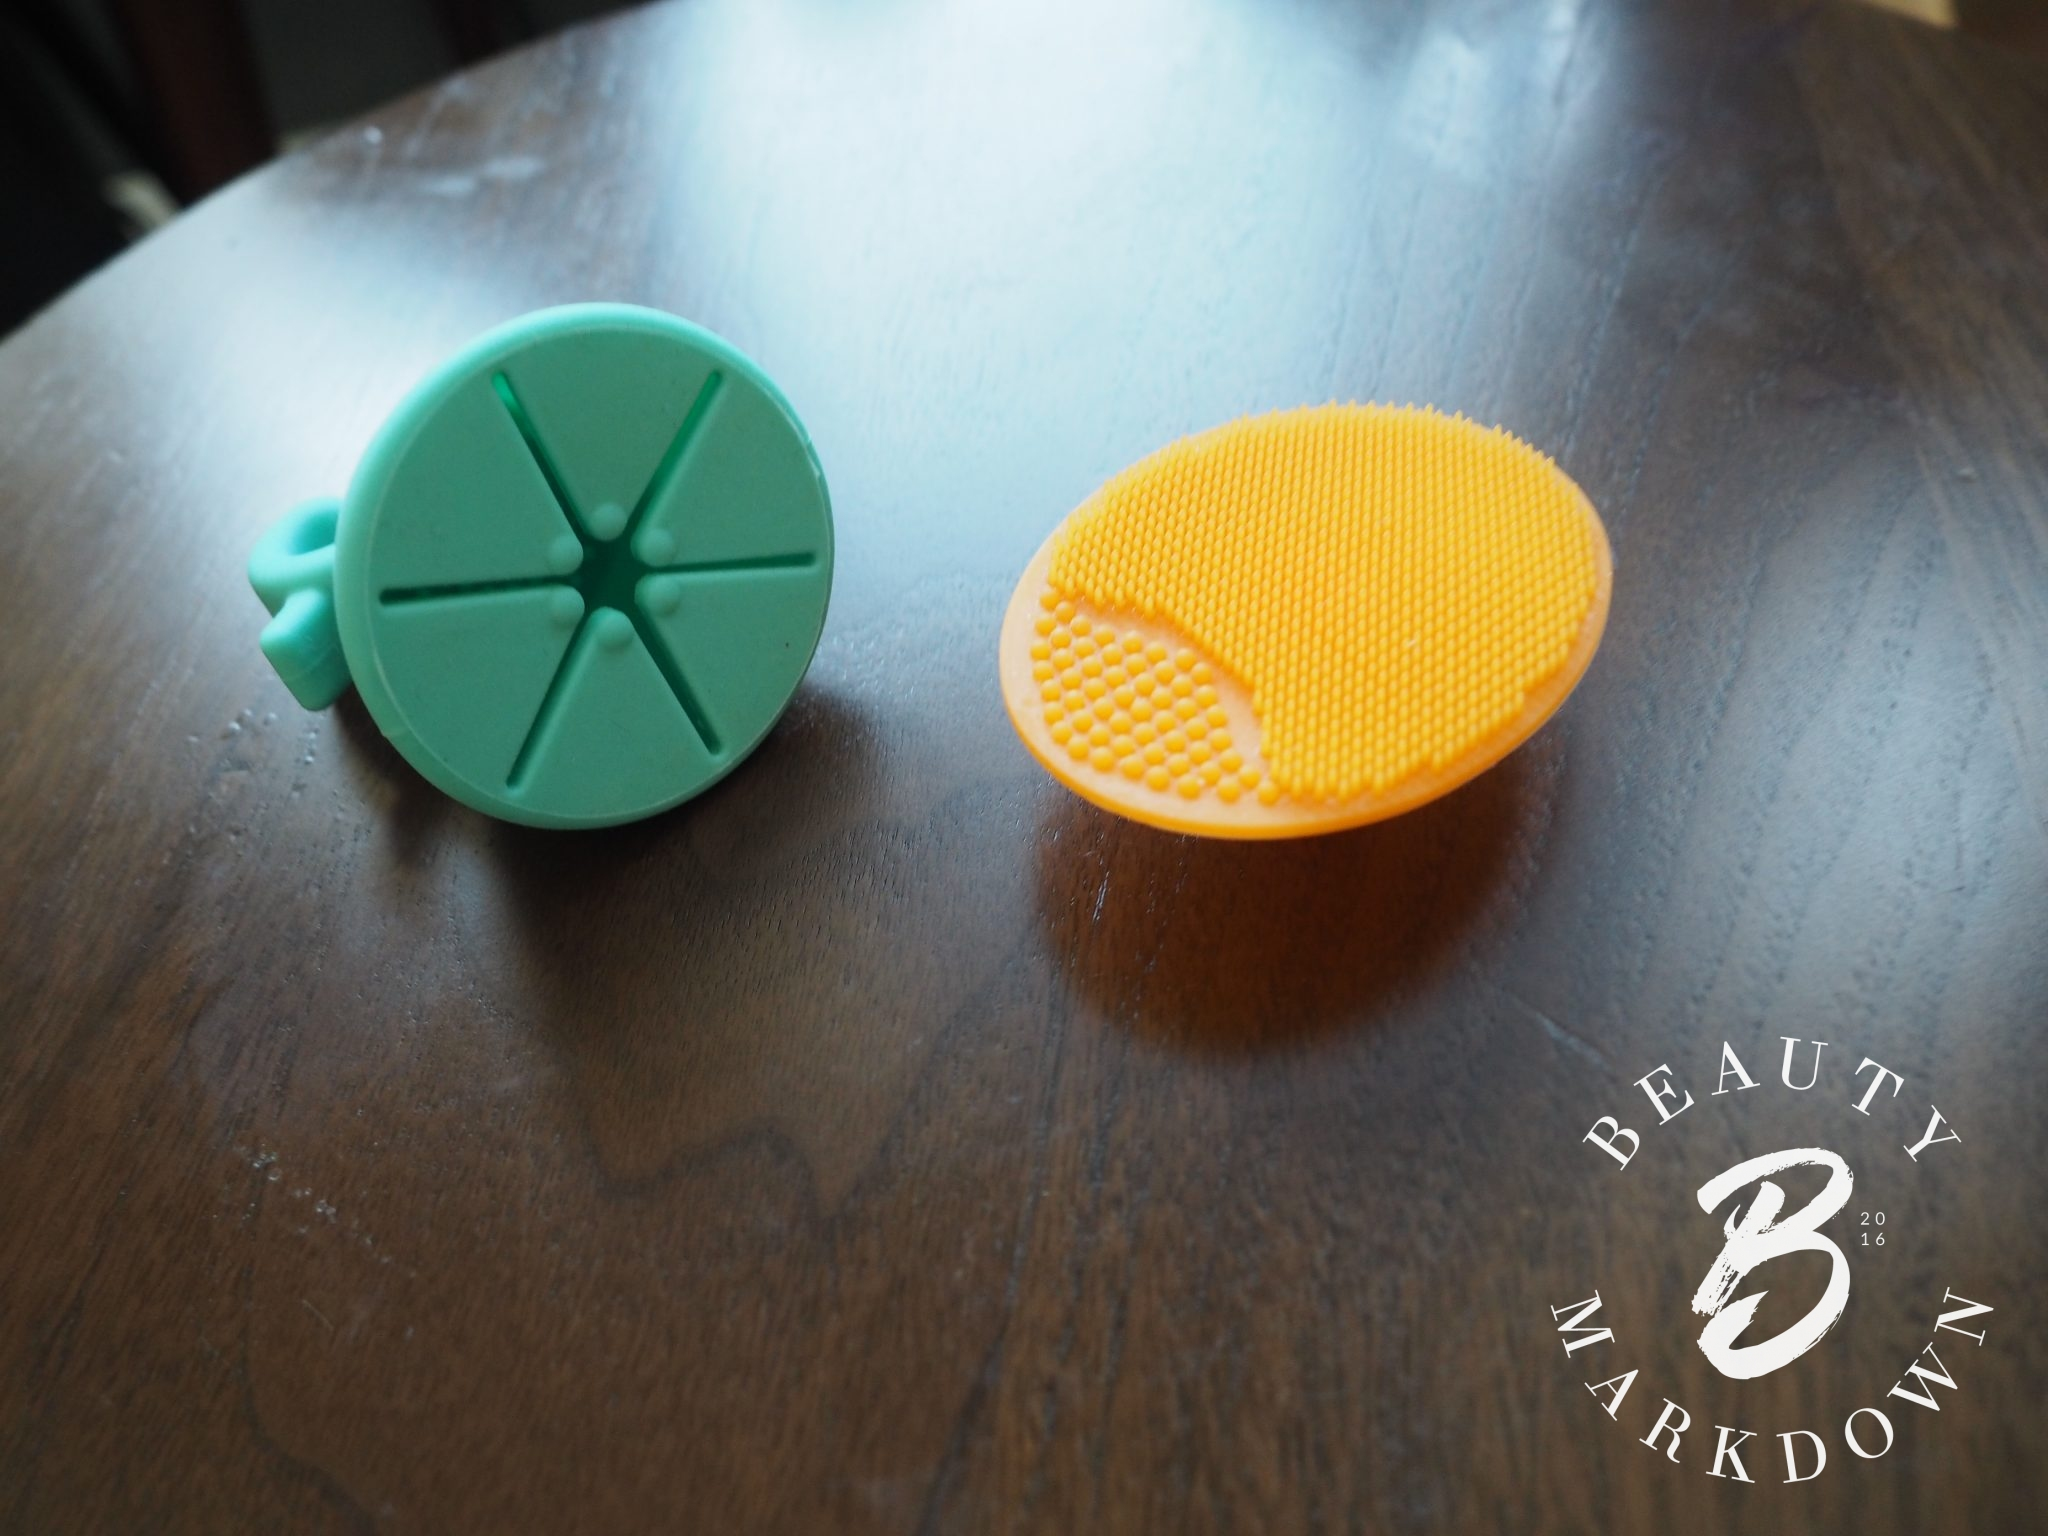 Tweexy dupe silicone face brush review